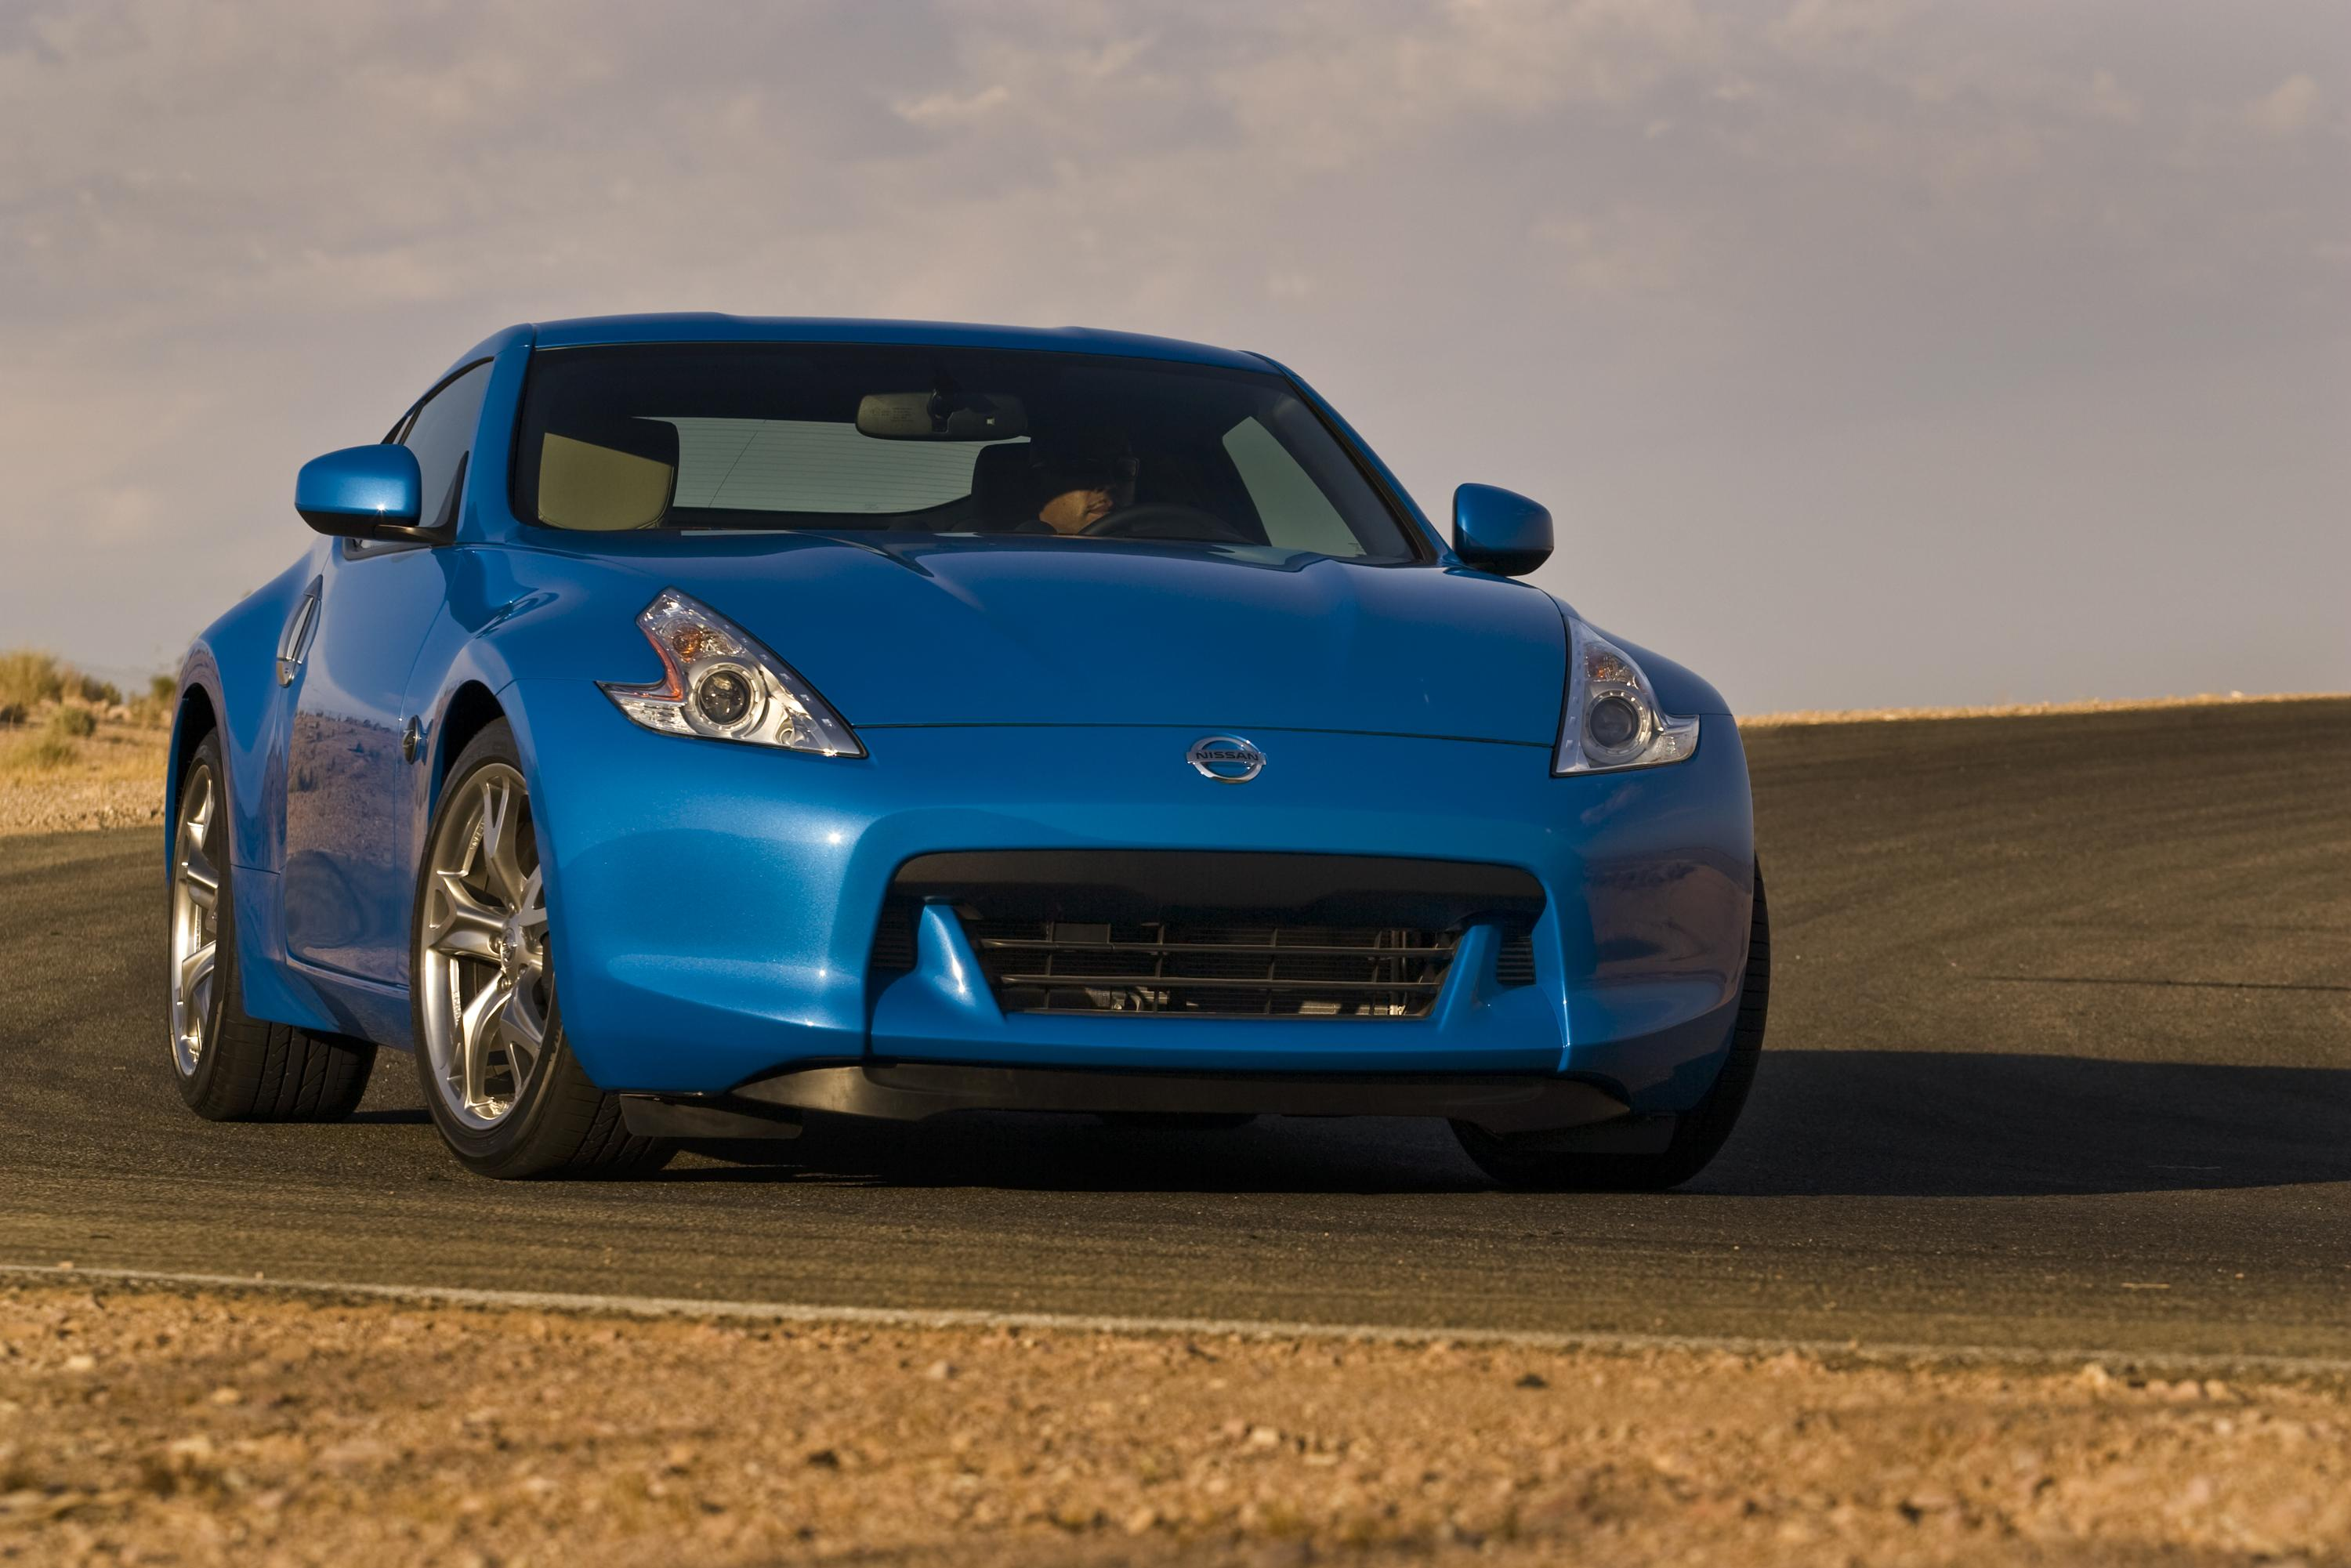 2010 Nissan 370Z Coupe Review   Top Speed. »